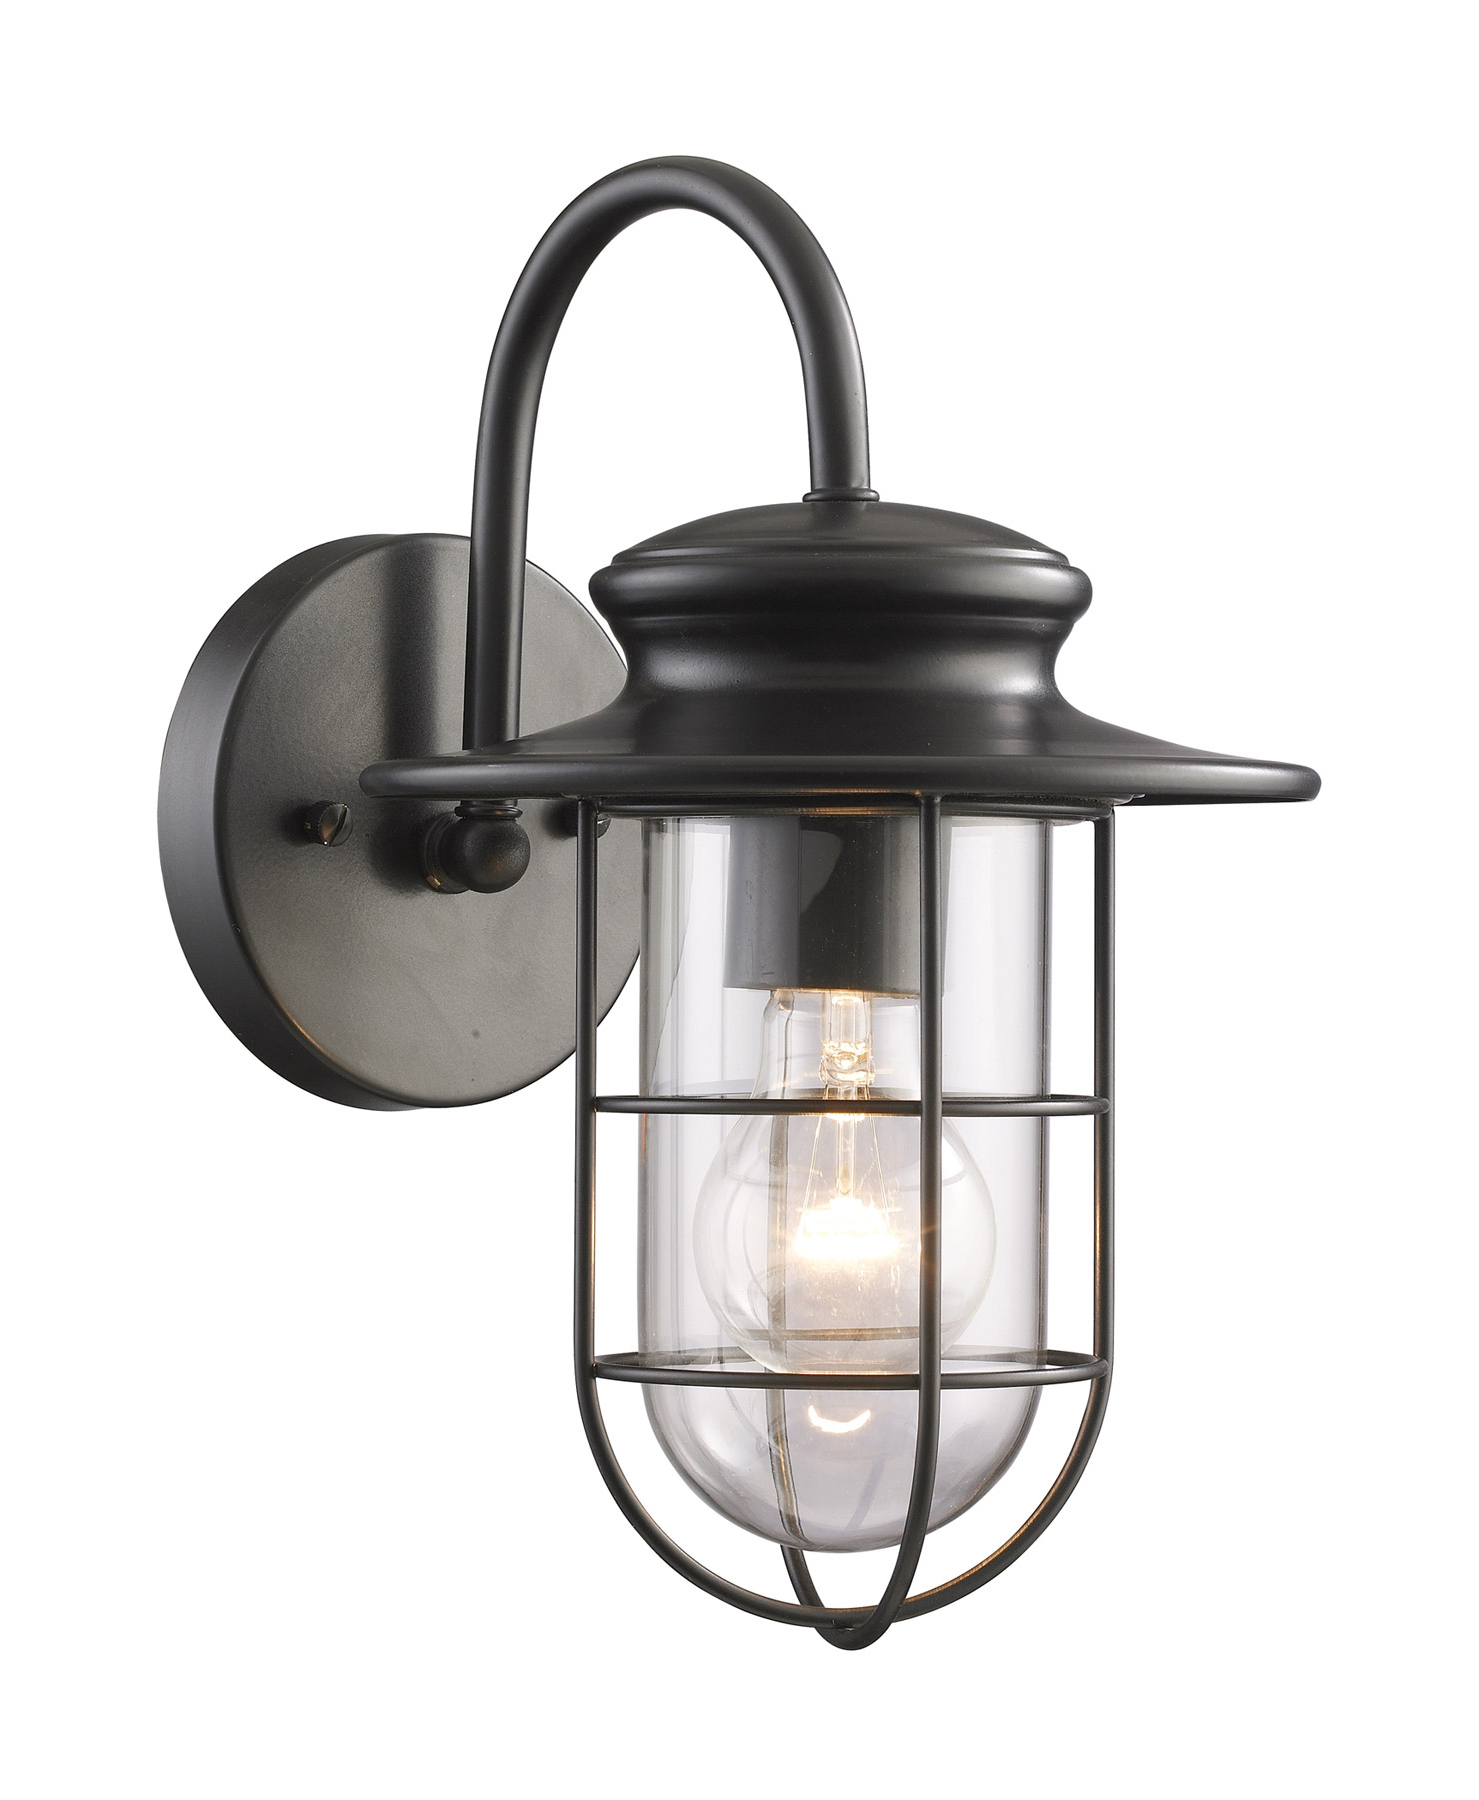 Elk Lighting 42284/1 Portside Outdoor Wall Mount Lantern With 2019 Malak Outdoor Wall Lanterns (View 12 of 15)